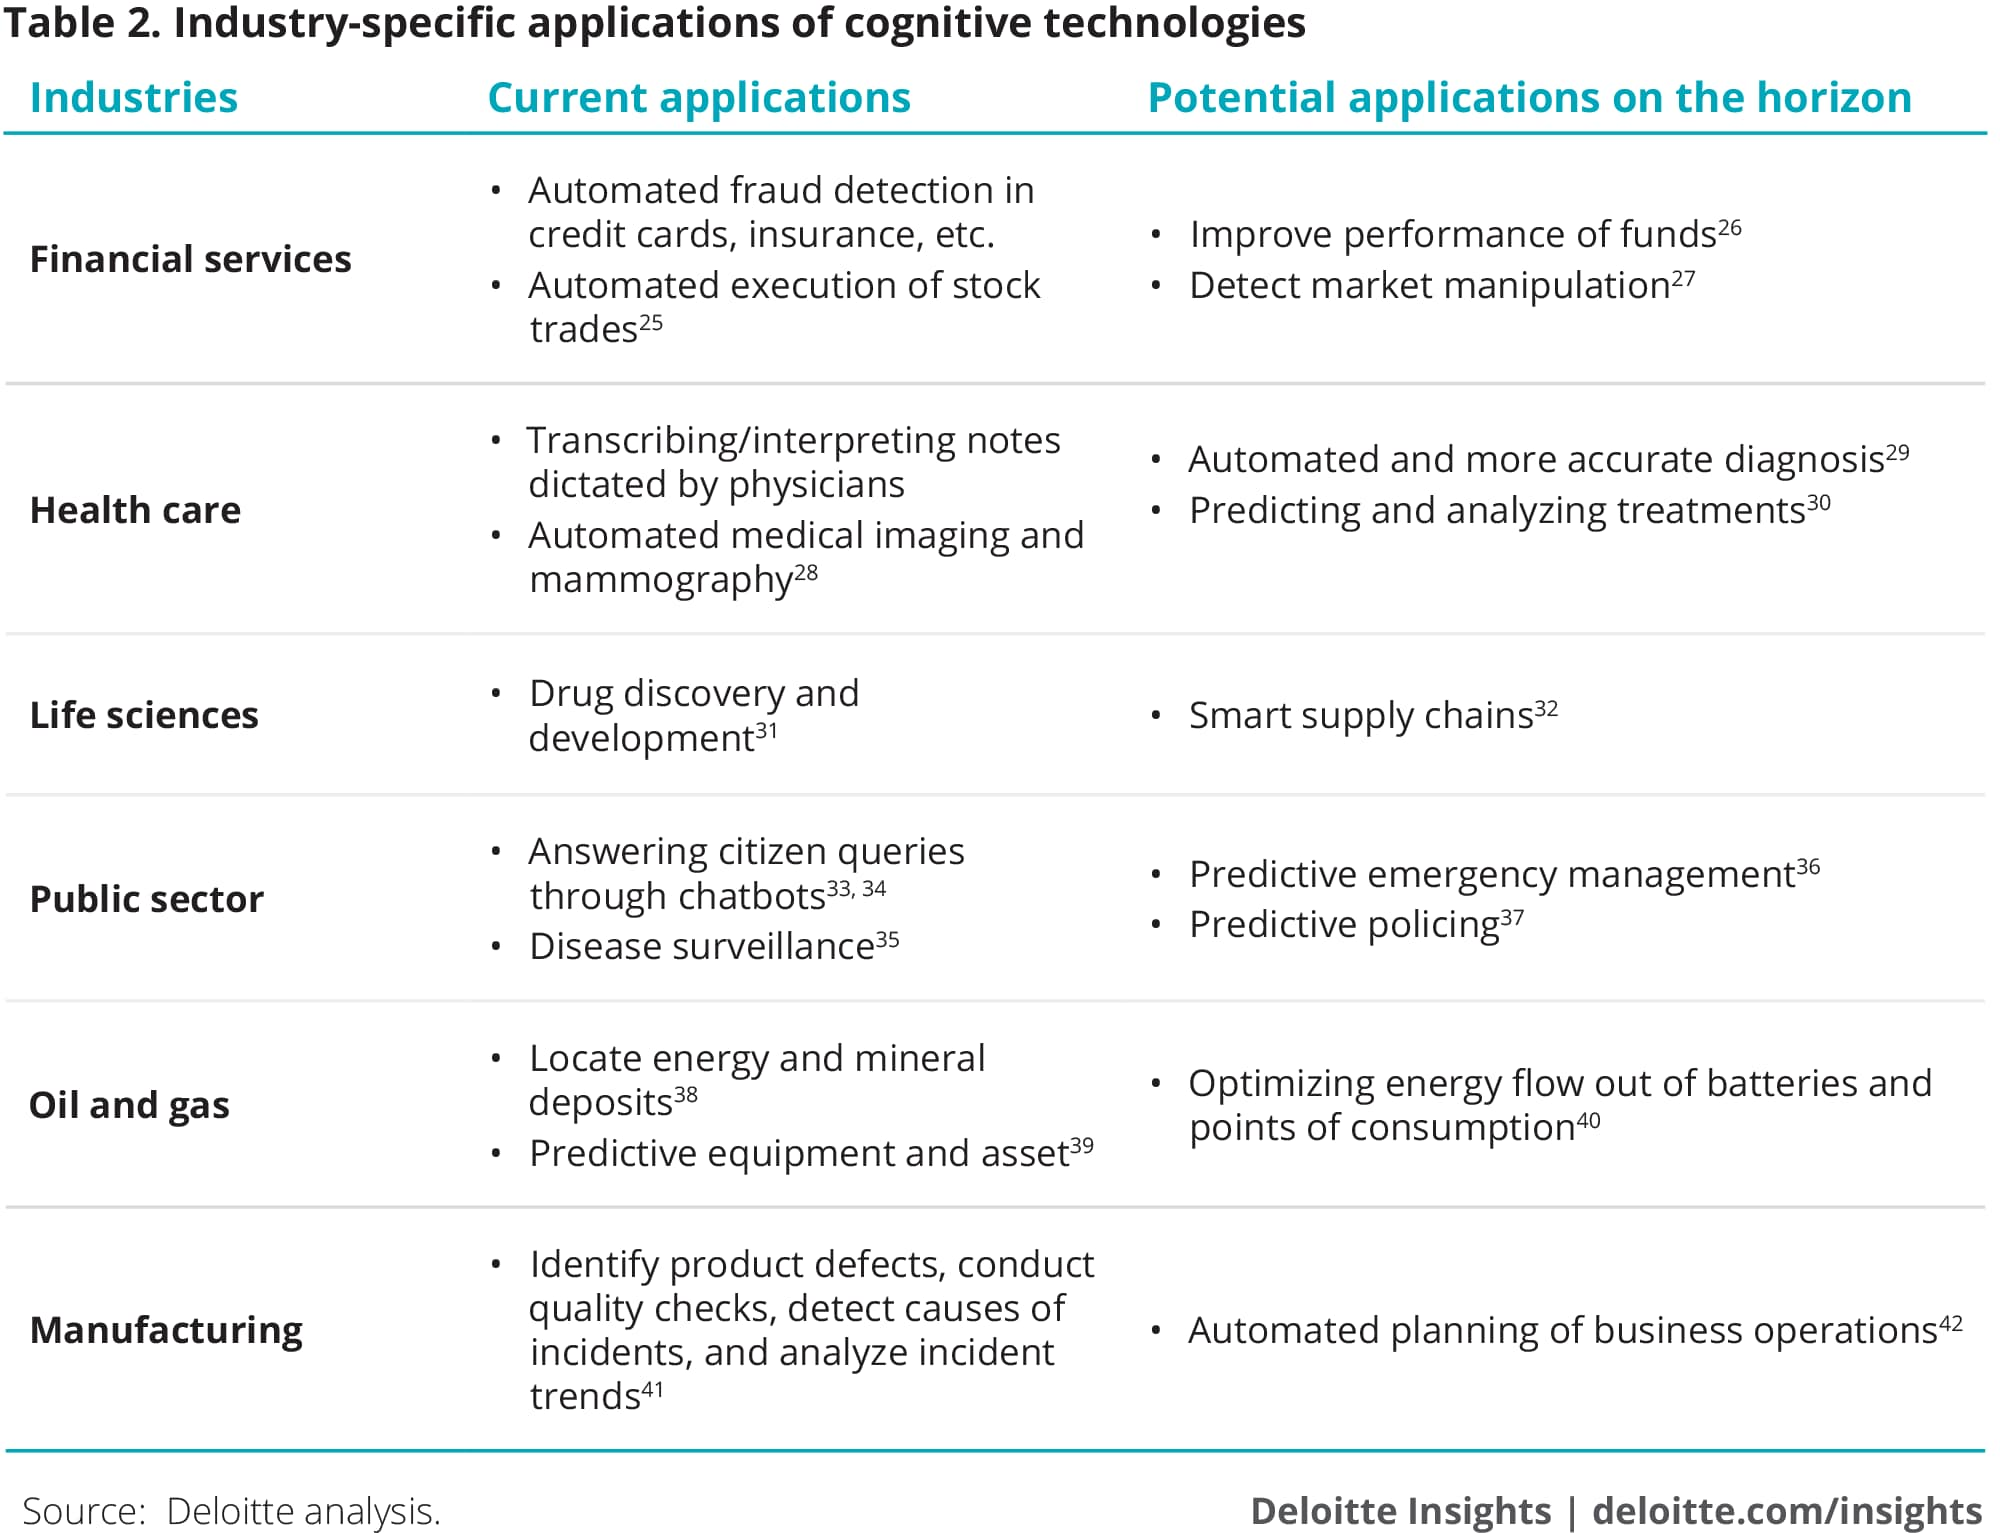 Industry-specific applications of cognitive technologies